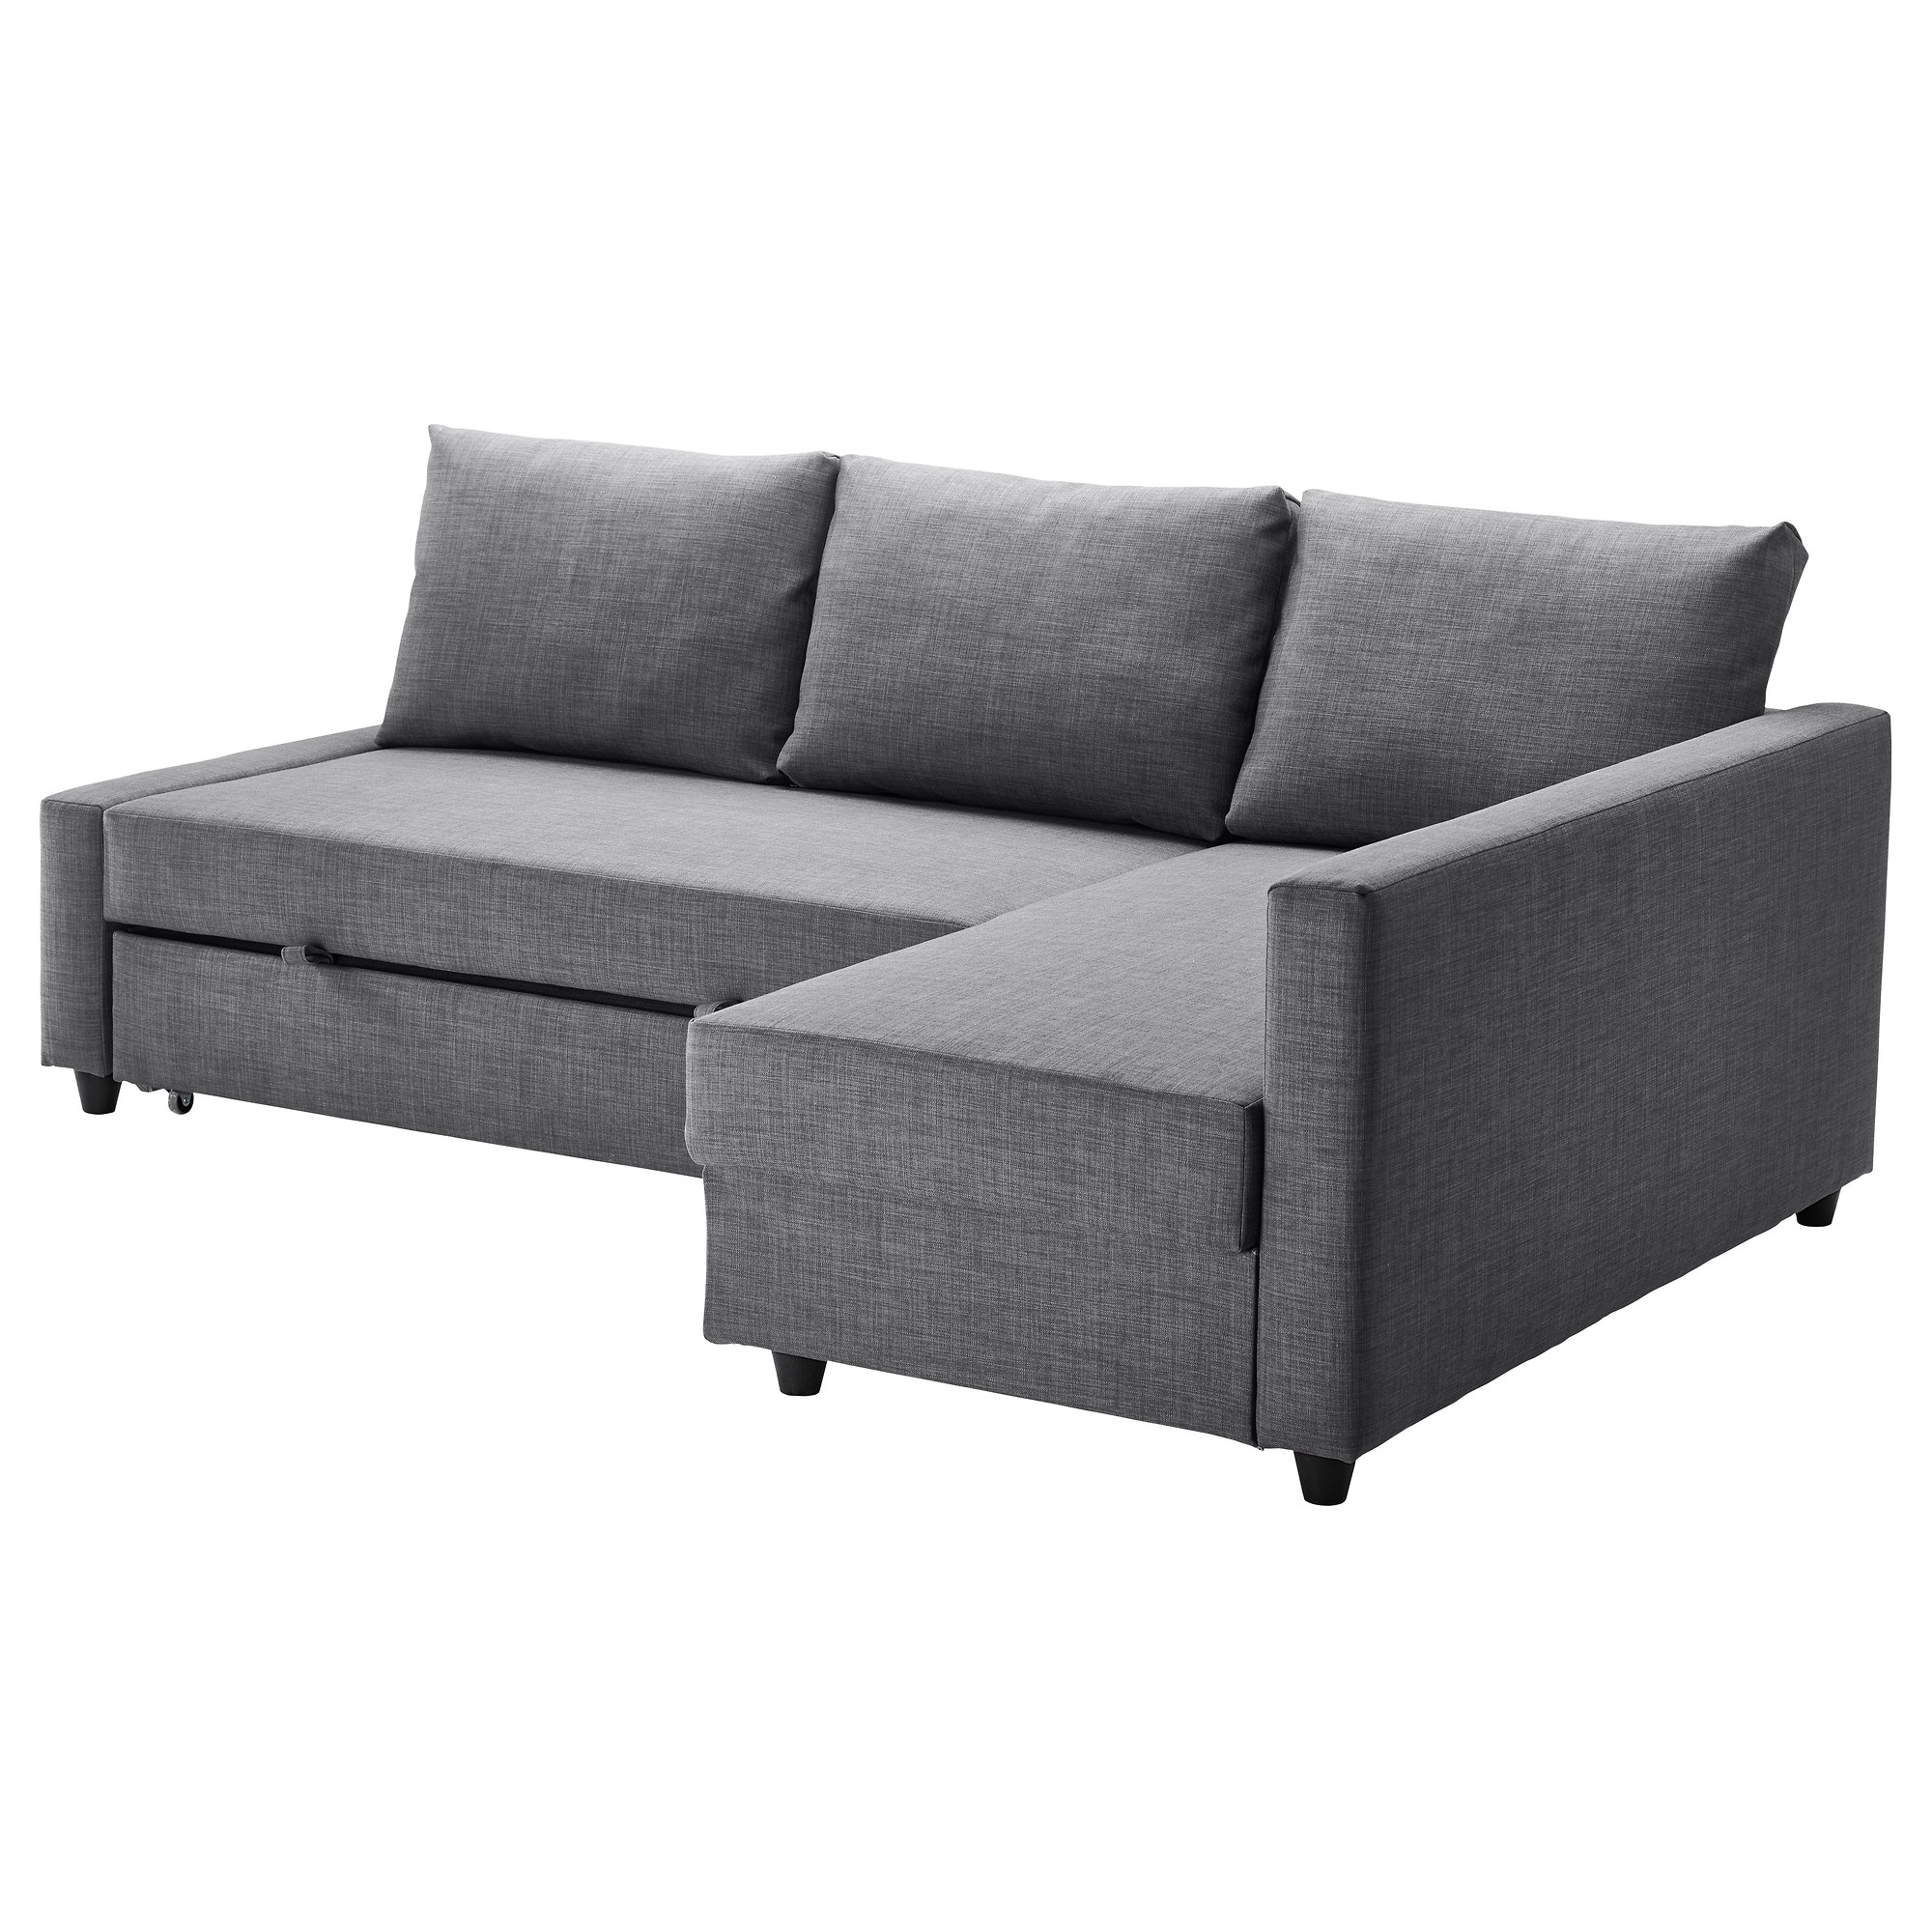 Friheten Corner Sofa Bed With Storage Skiftebo Dark Grey Ikea Regarding Sofa Chairs Ikea (Image 5 of 15)